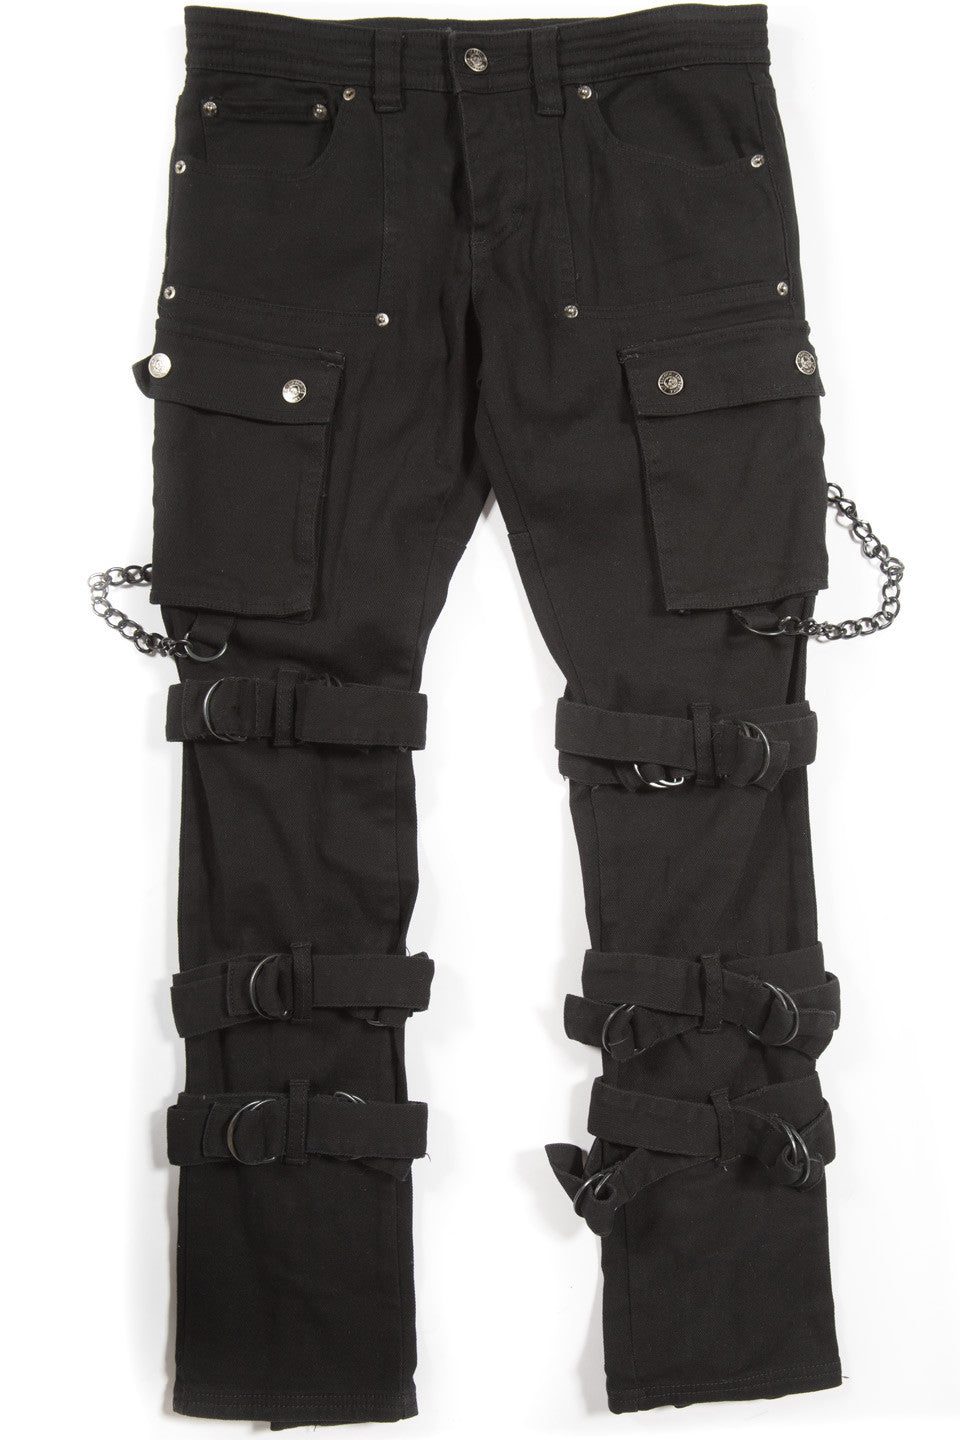 Lip Service Dead Nation Bondage Pants-Jeans-Lip Service